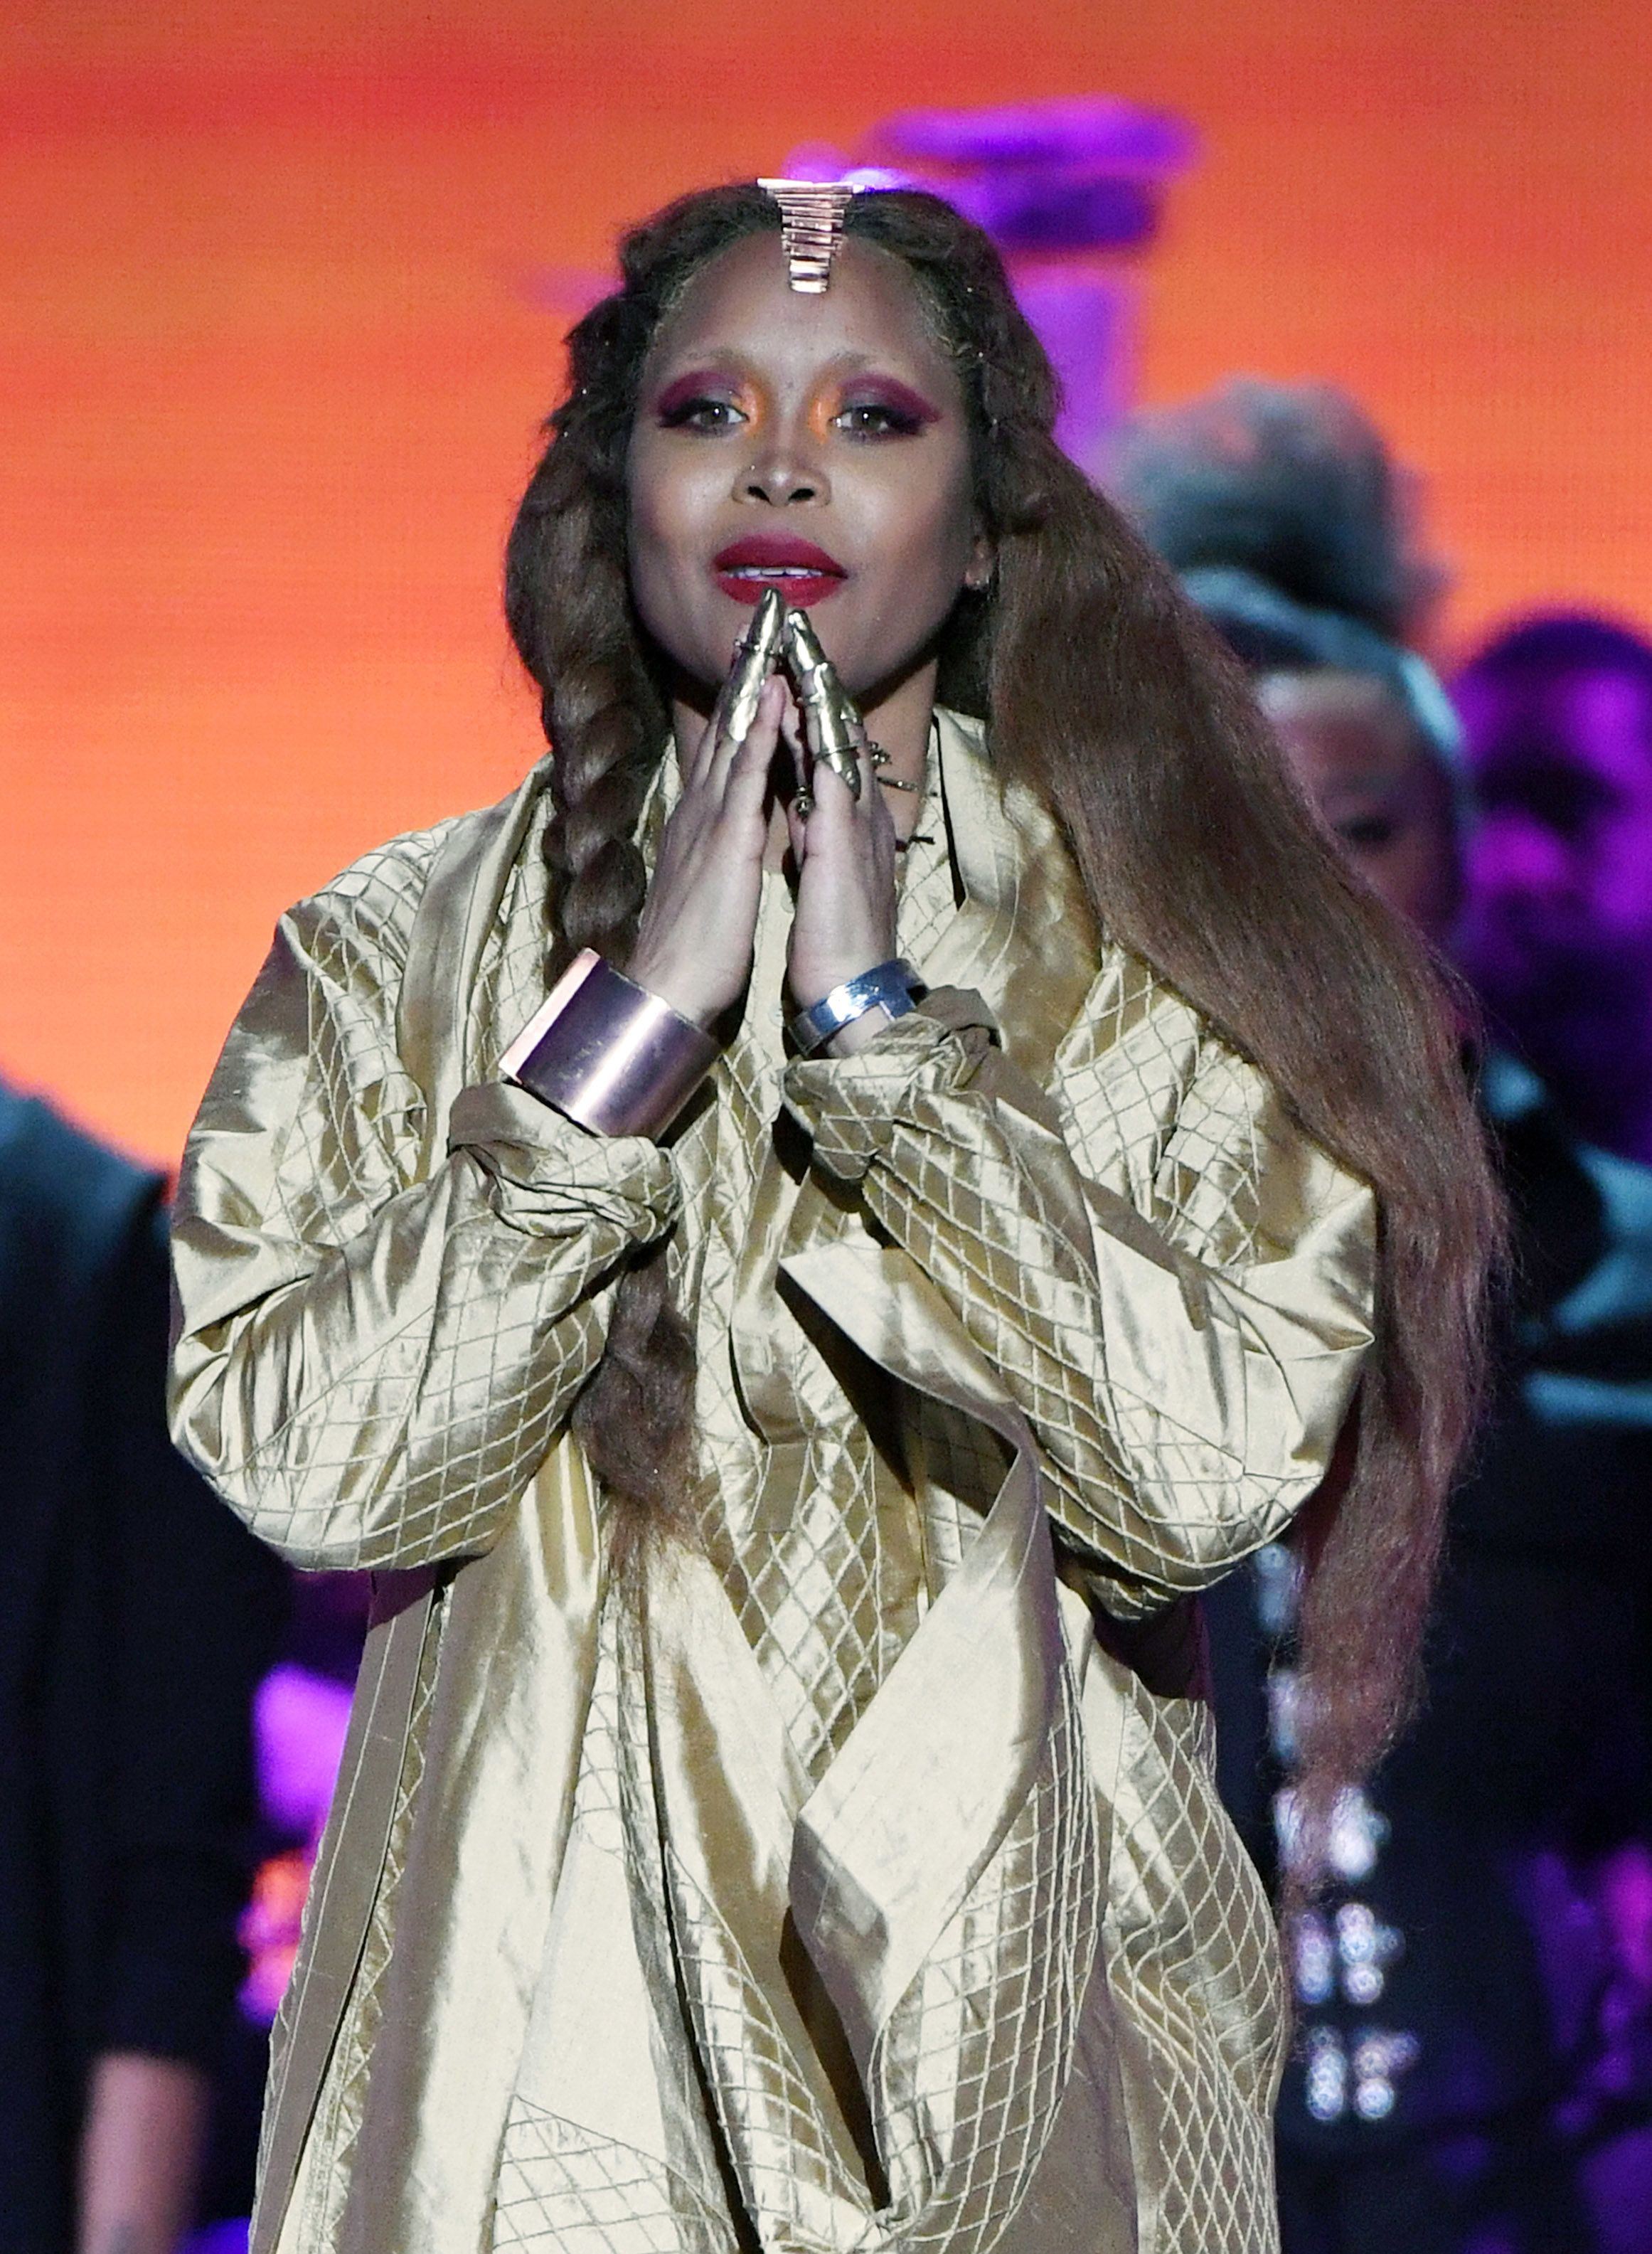 LAS VEGAS, NEVADA - NOVEMBER 17:  Erykah Badu performs onstage during the 2018 Soul Train Awards, presented by BET,  at the Orleans Arena on November 17, 2018 in Las Vegas, Nevada.  (Photo by Ethan Miller/Getty Images for BET)